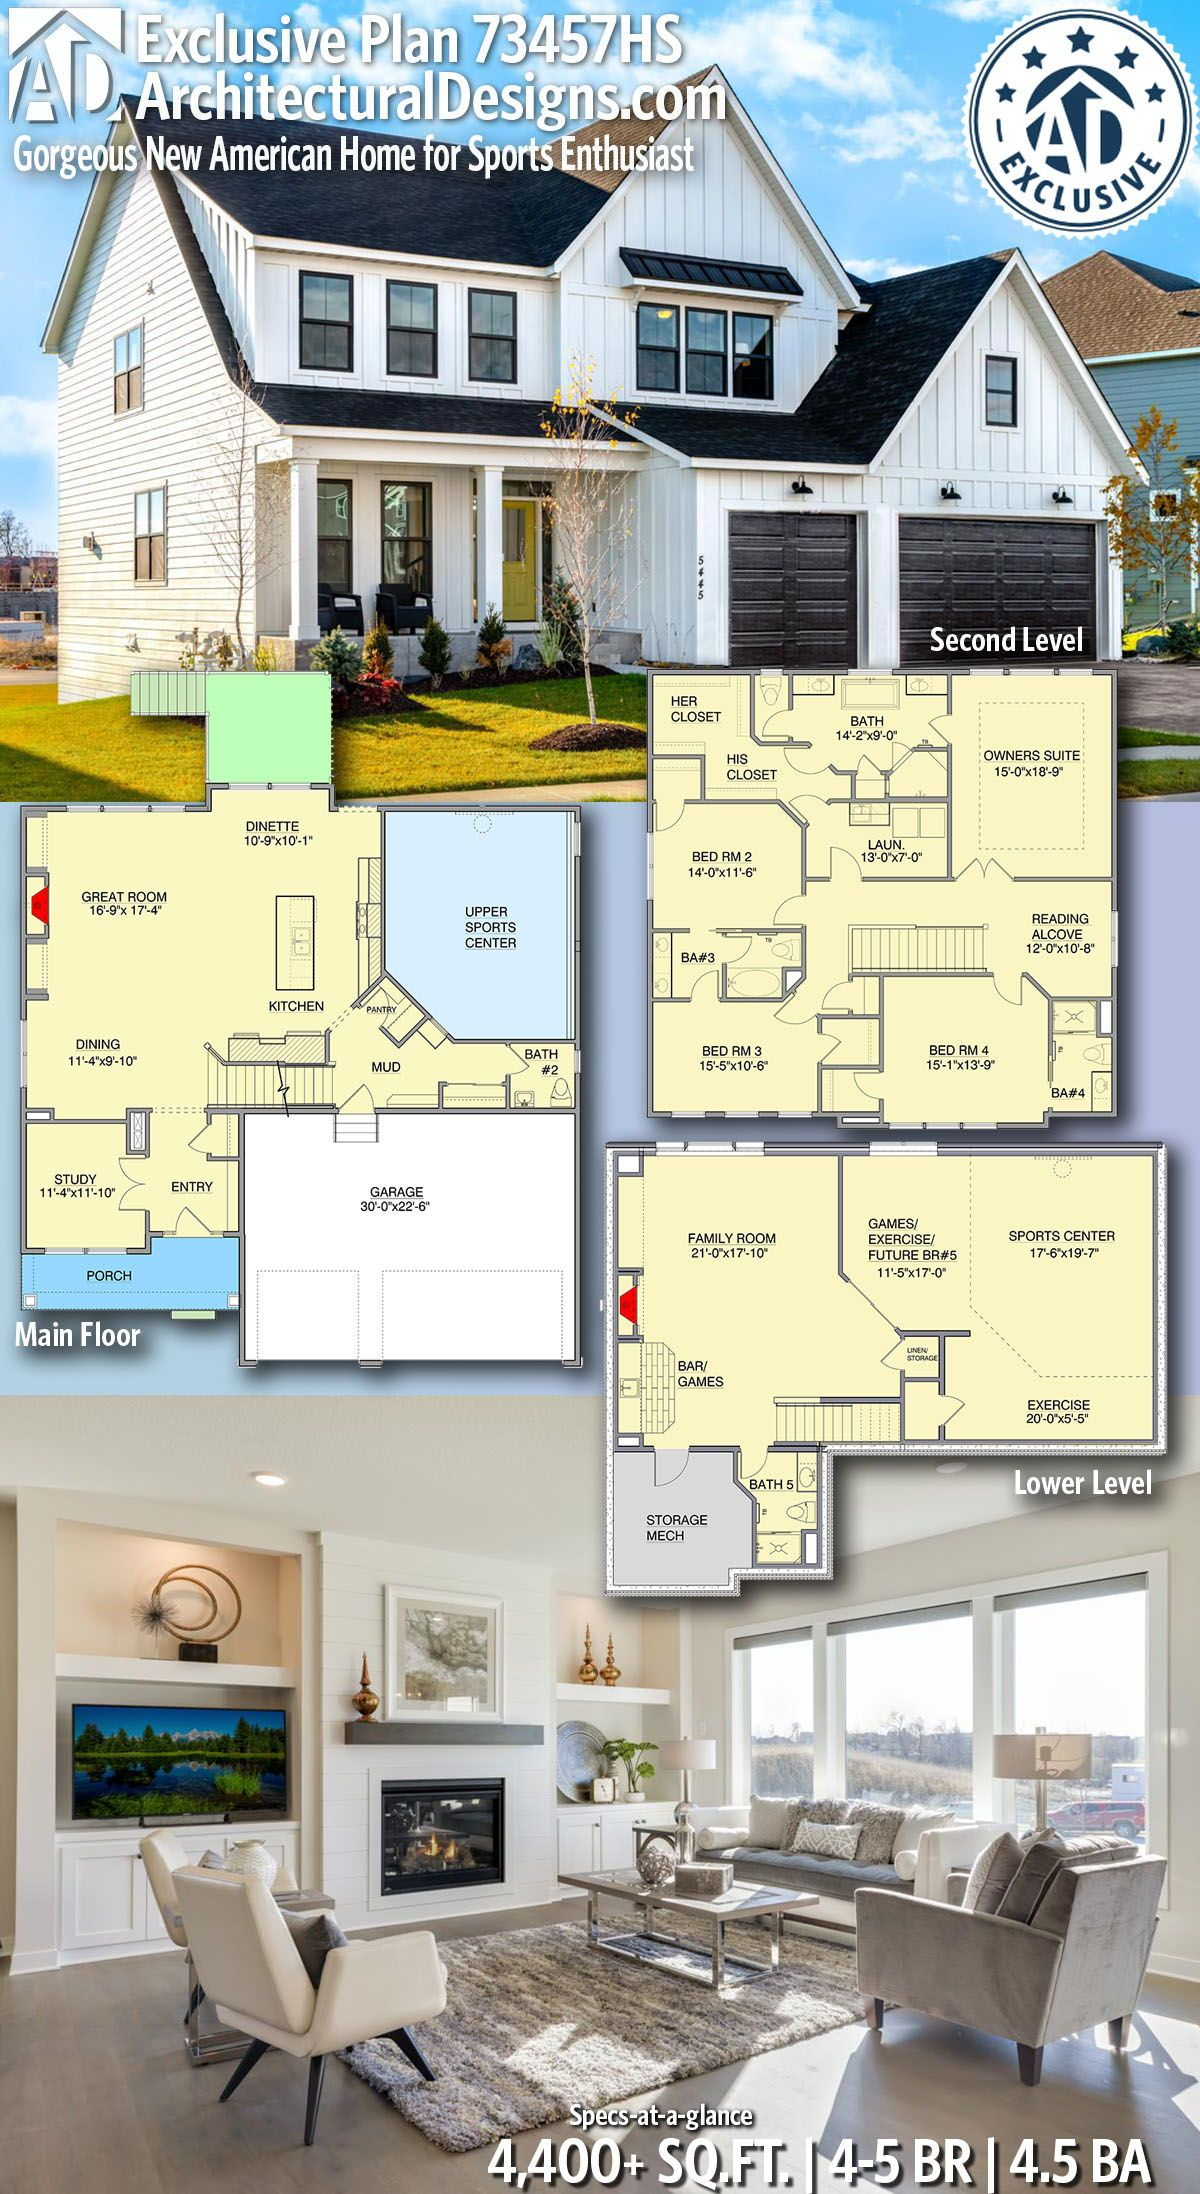 No Sports Center Master On Ground Level House Plans New House Plans House Floor Design